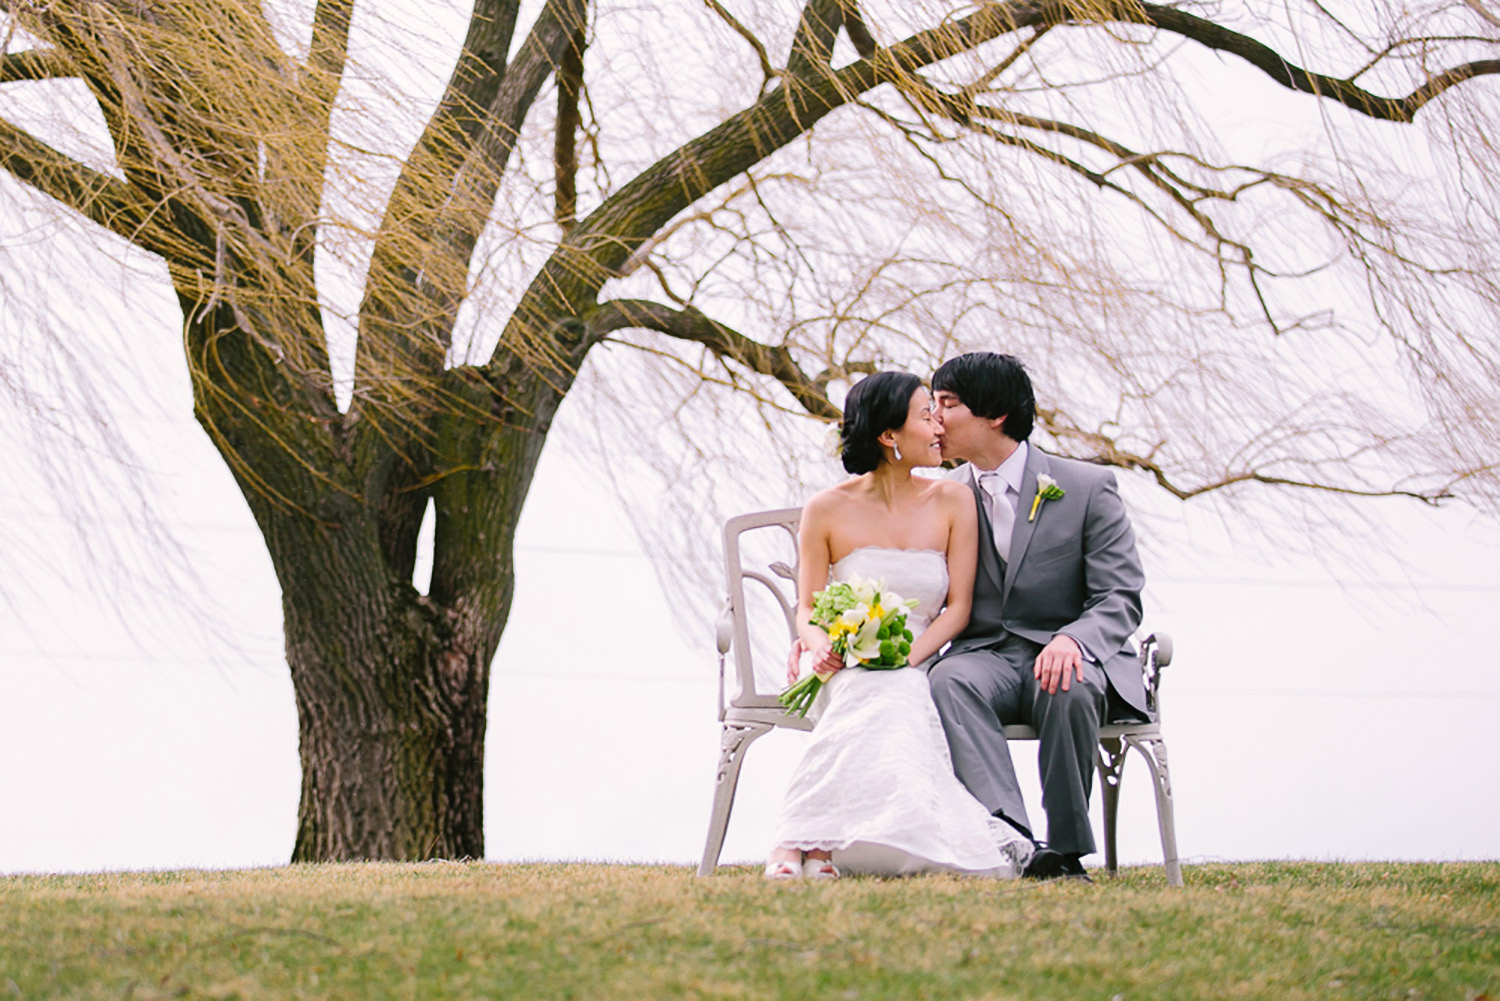 Vineland-Estates-Wedding-Vineyard-Bride-Photo-By-Tamara-Lockwood-Photography-011.jpg